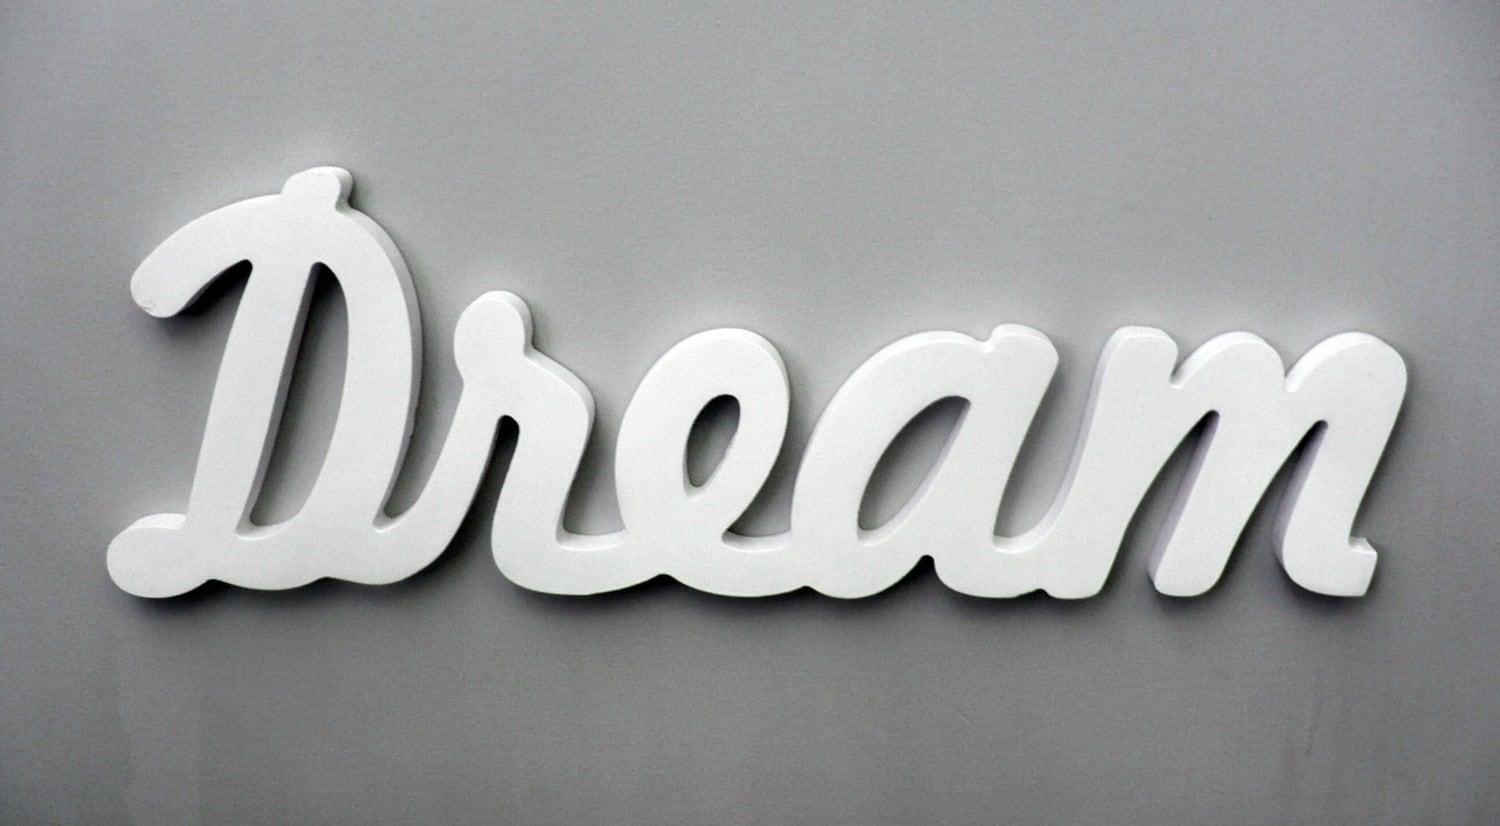 Wooden Inspirational Wall Word, Dream Wall Decor, Bedroom Sign, Bedroom  Decor, Dream Decor, Wood Sign, Nursery Decor, Dream Wall Art